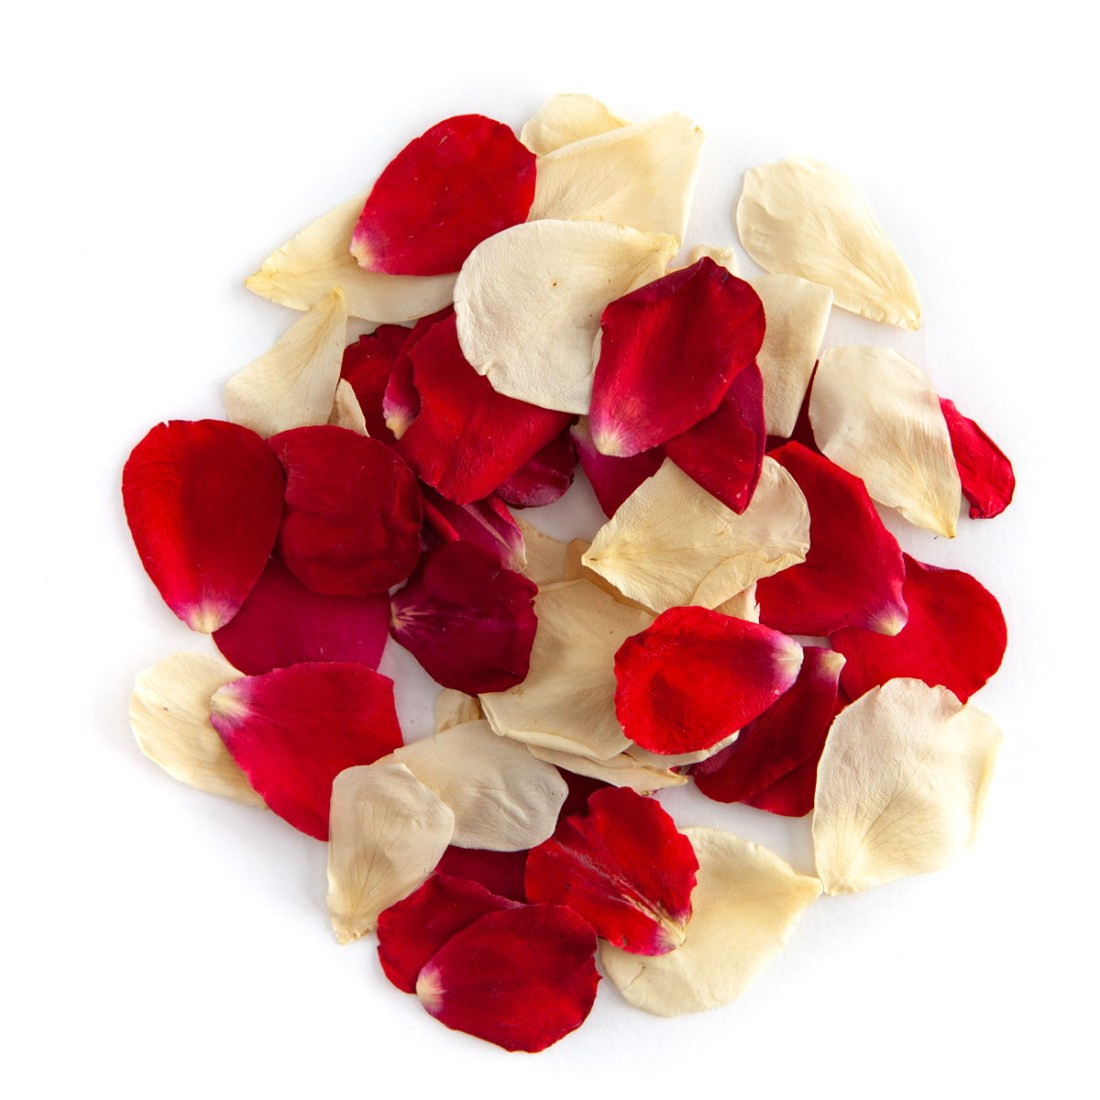 Red & Cream rose petals - Biodegradable Rose Petal Confetti - Real Flower Petal Confetti